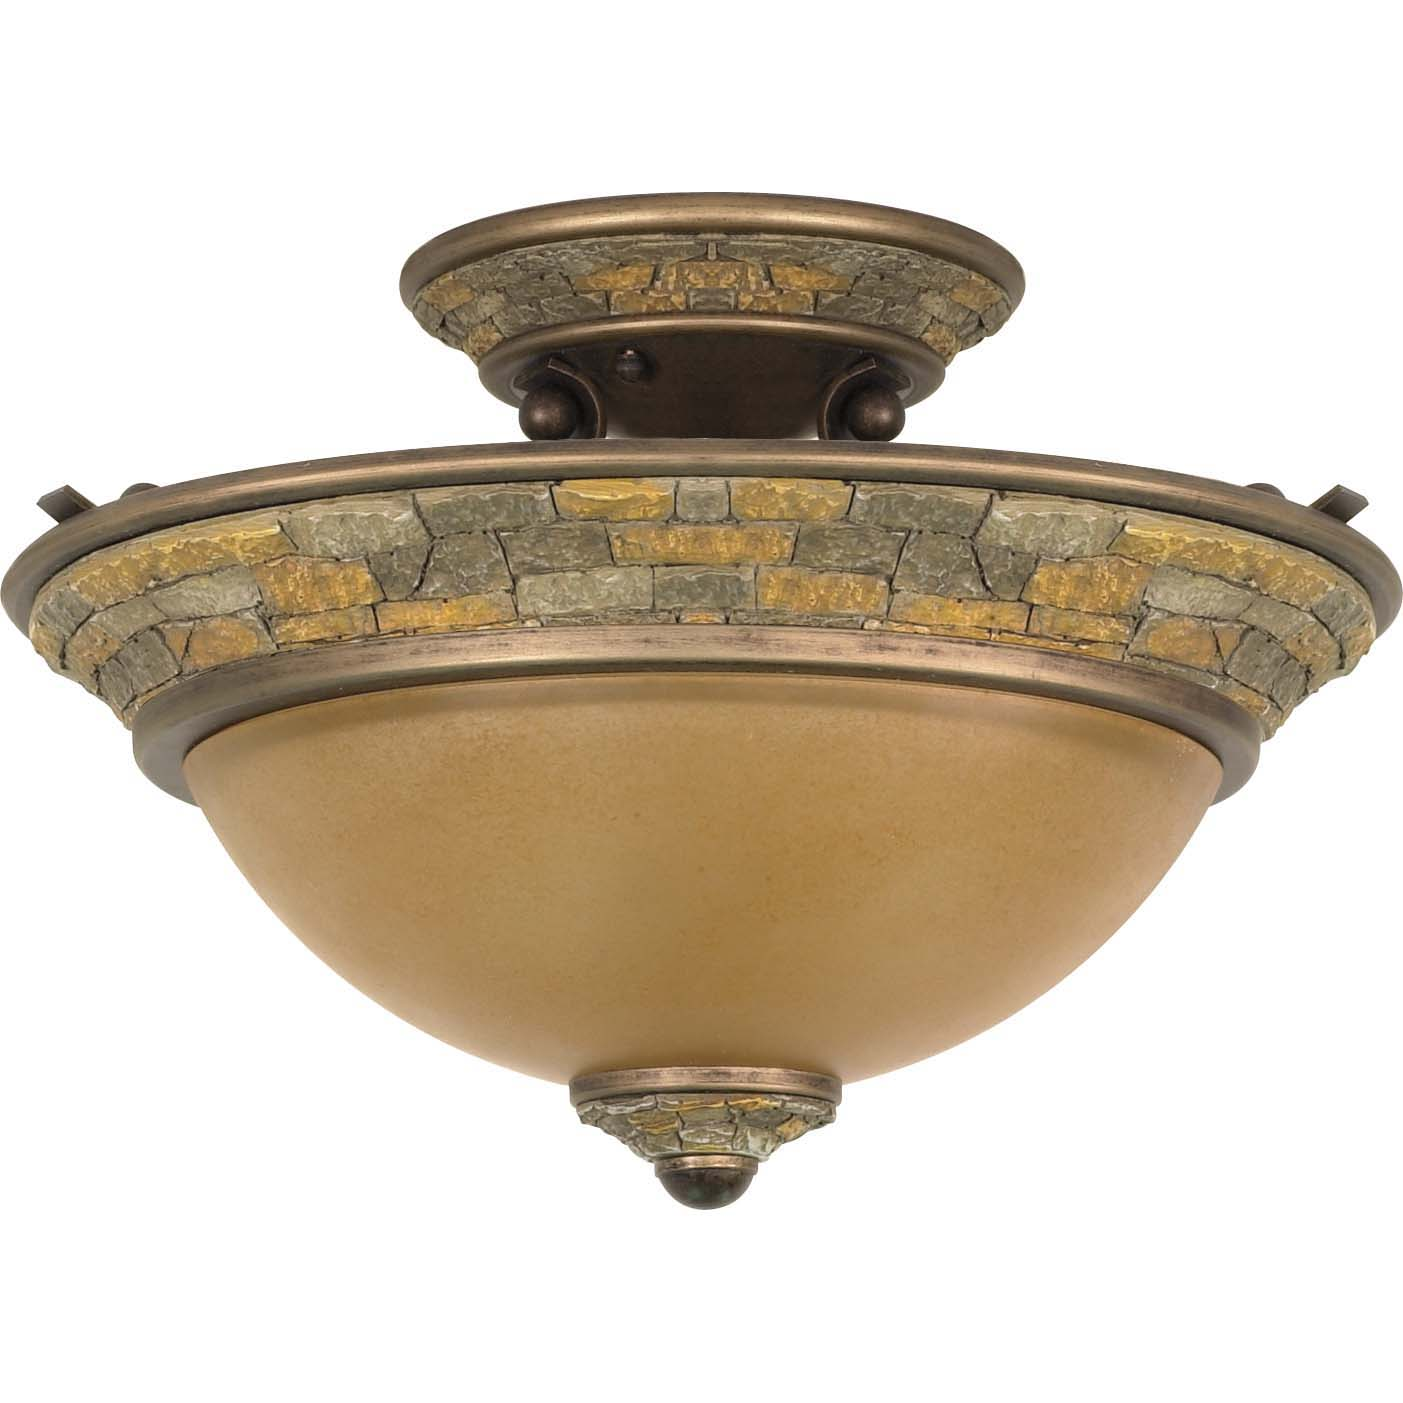 Rockport Tuscano 2-light Dorado Bronze Semi Flush Dome Light